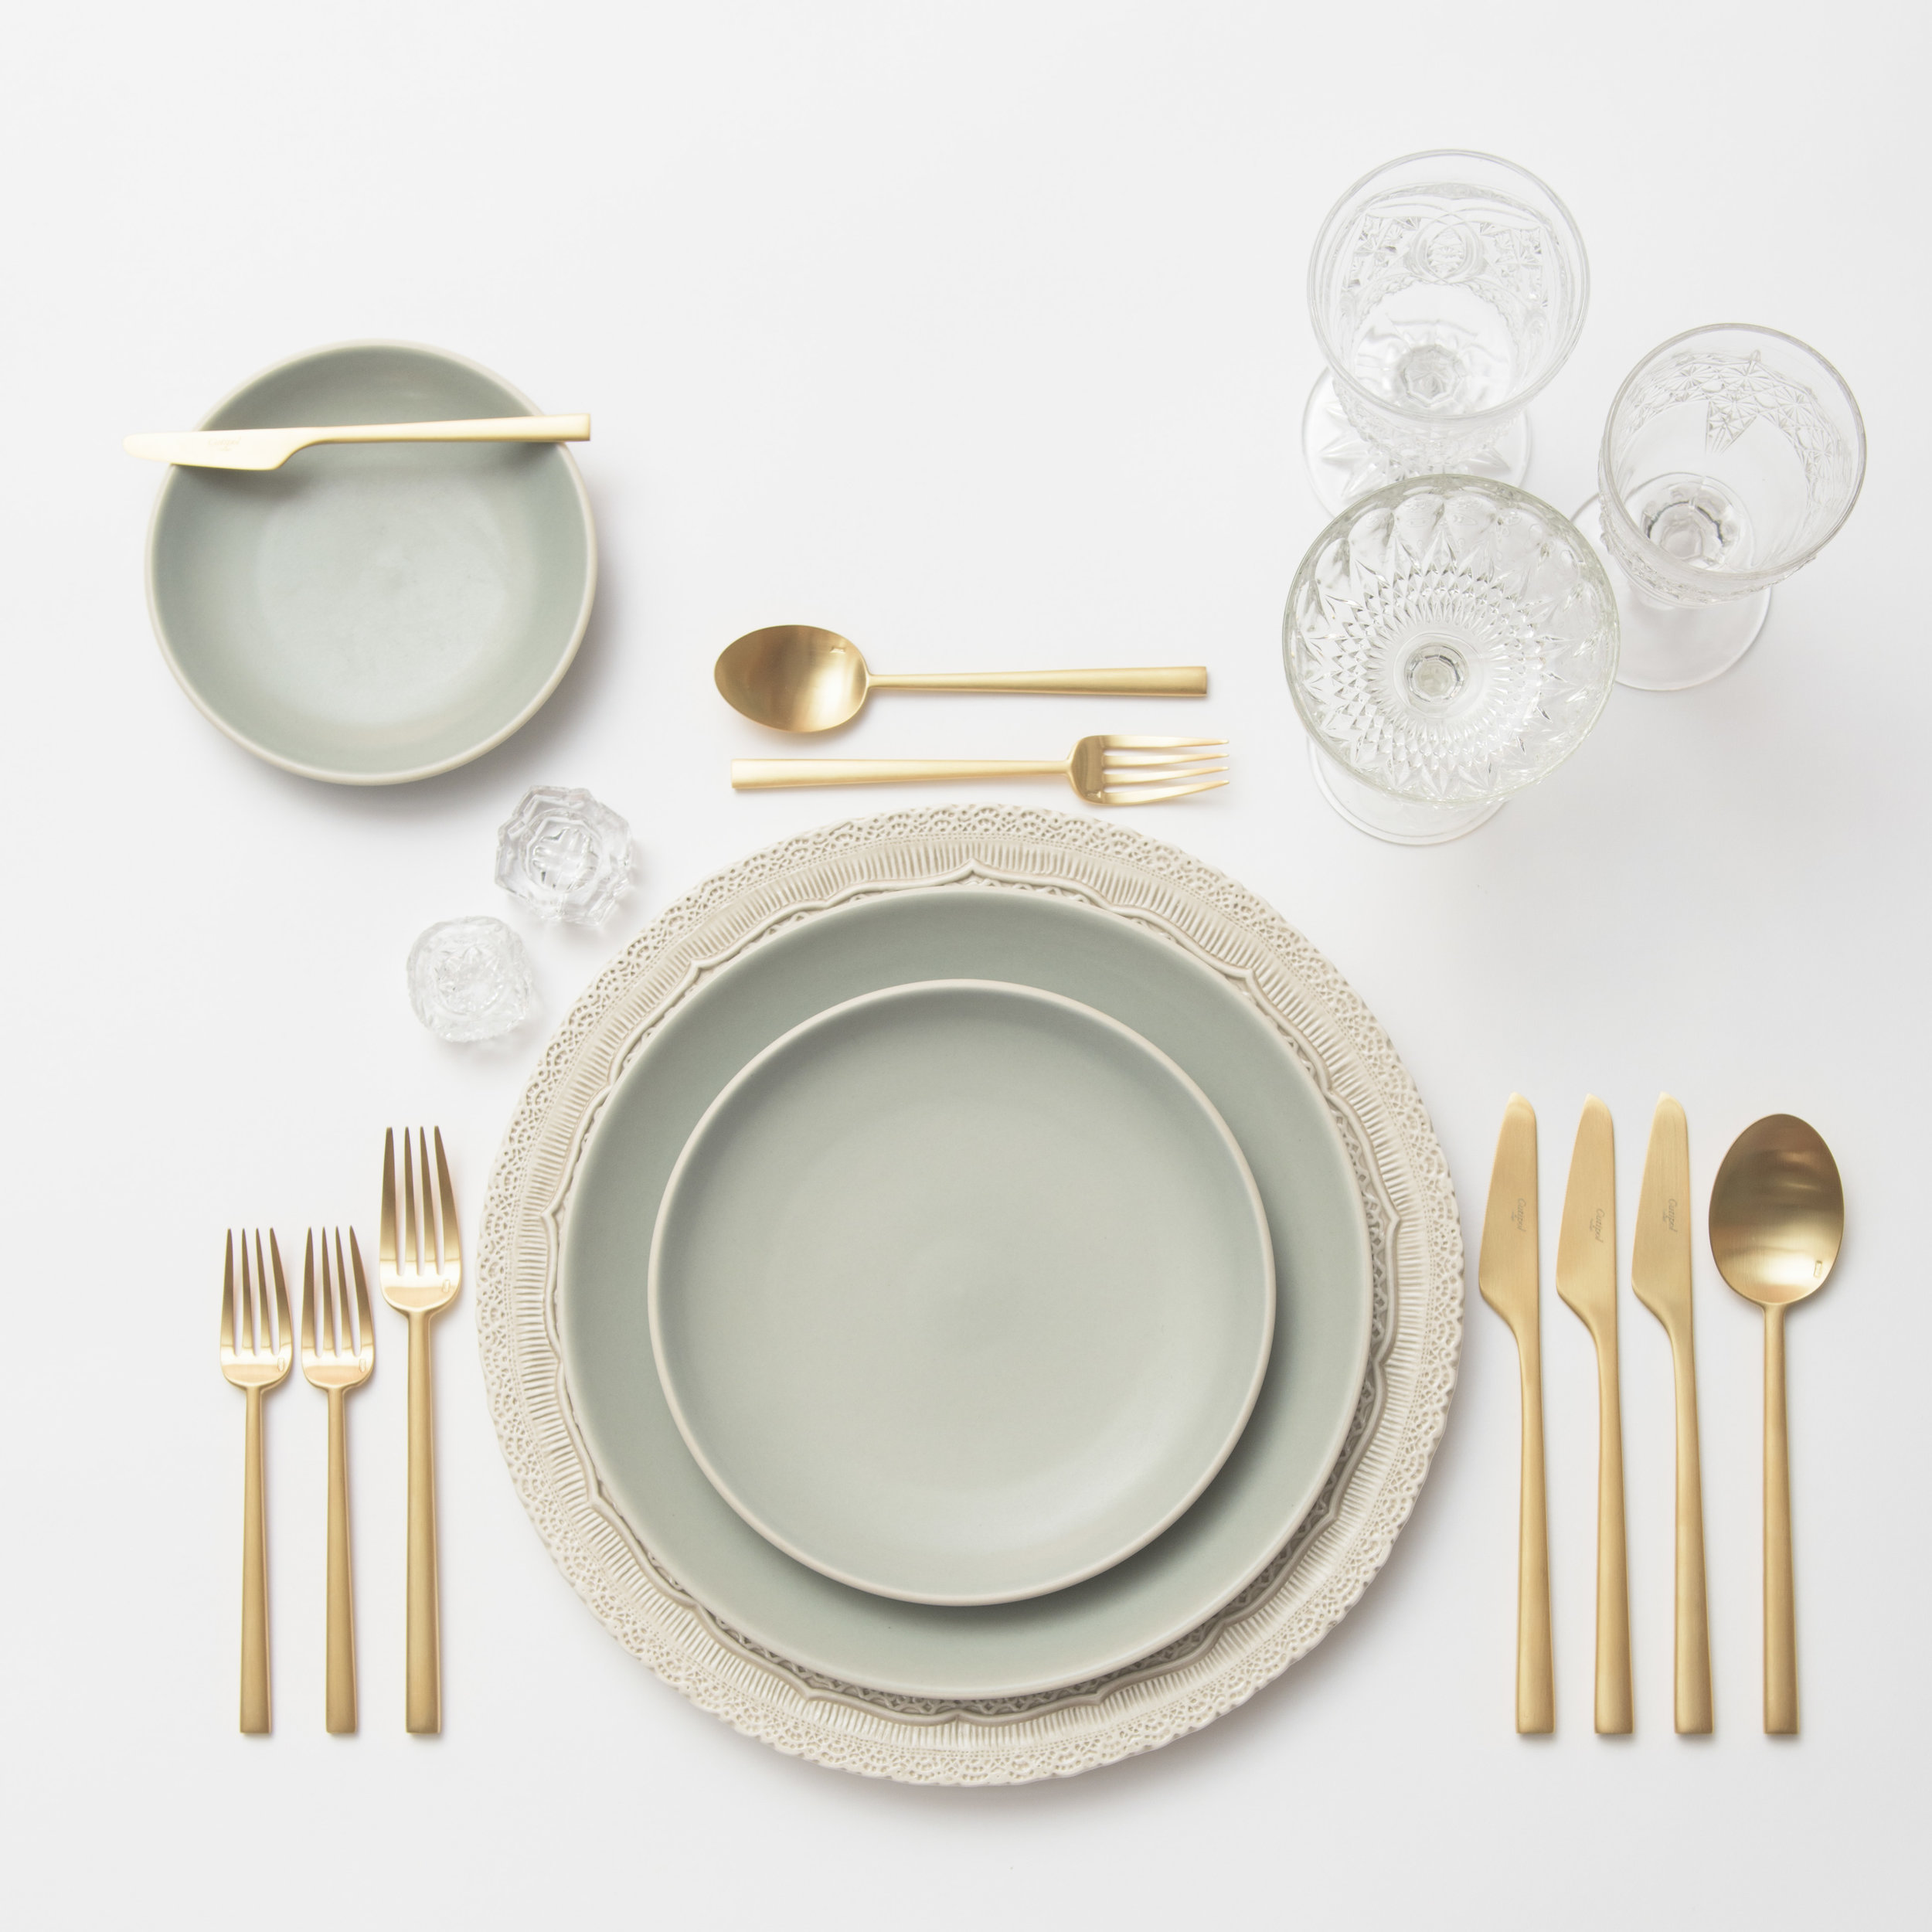 RENT: Lace Chargers in White + Heath Ceramics in Mist + Rondo Flatware in Brushed 24k Gold + Early American Pressed Glass Goblets + Antique Crystal Salt Cellars  SHOP: Rondo Flatware in Brushed 24k Gold